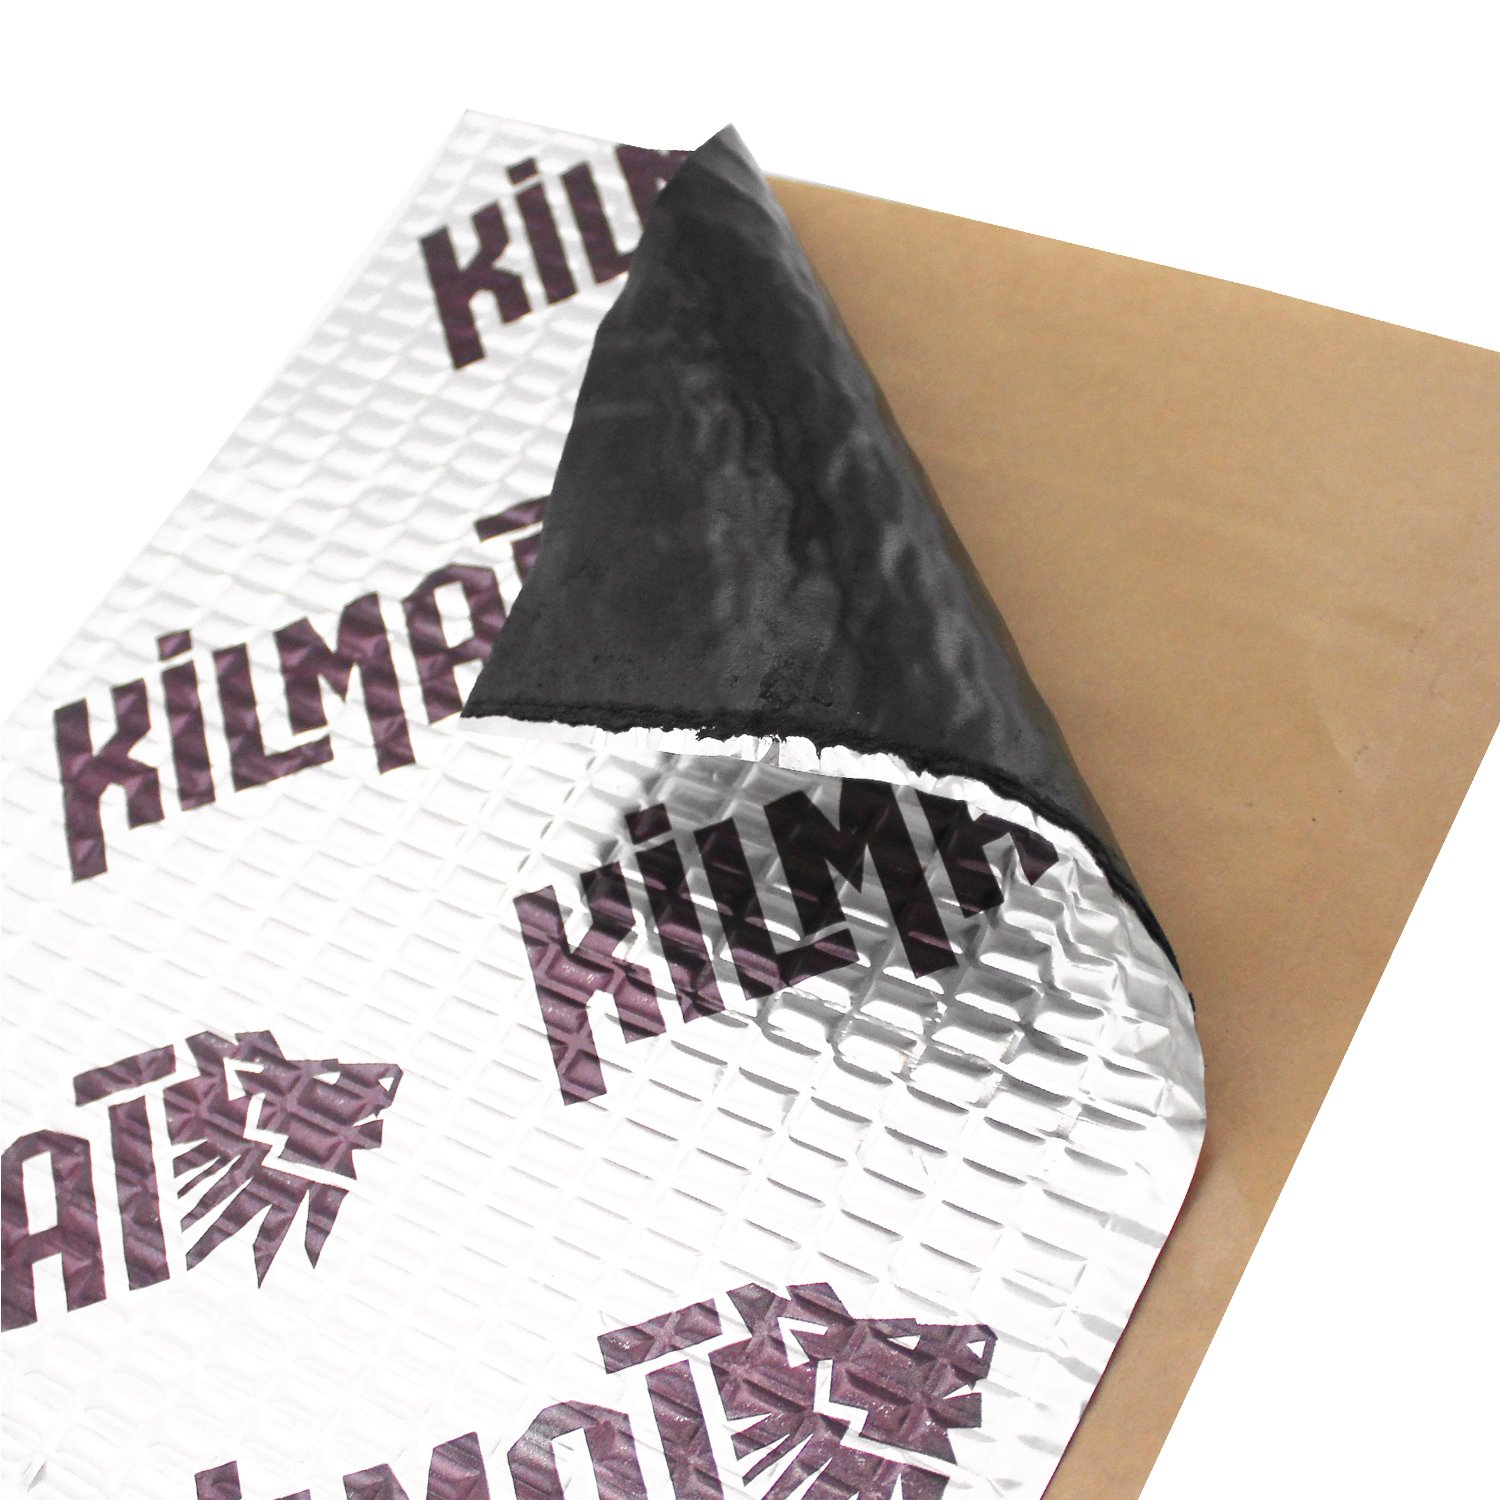 Kilmat 50 mil 50 sqft Car Sound Deadening Mat, Butyl Automotive Sound Deadener, Audio Noise Insulation and dampening by Kilmat